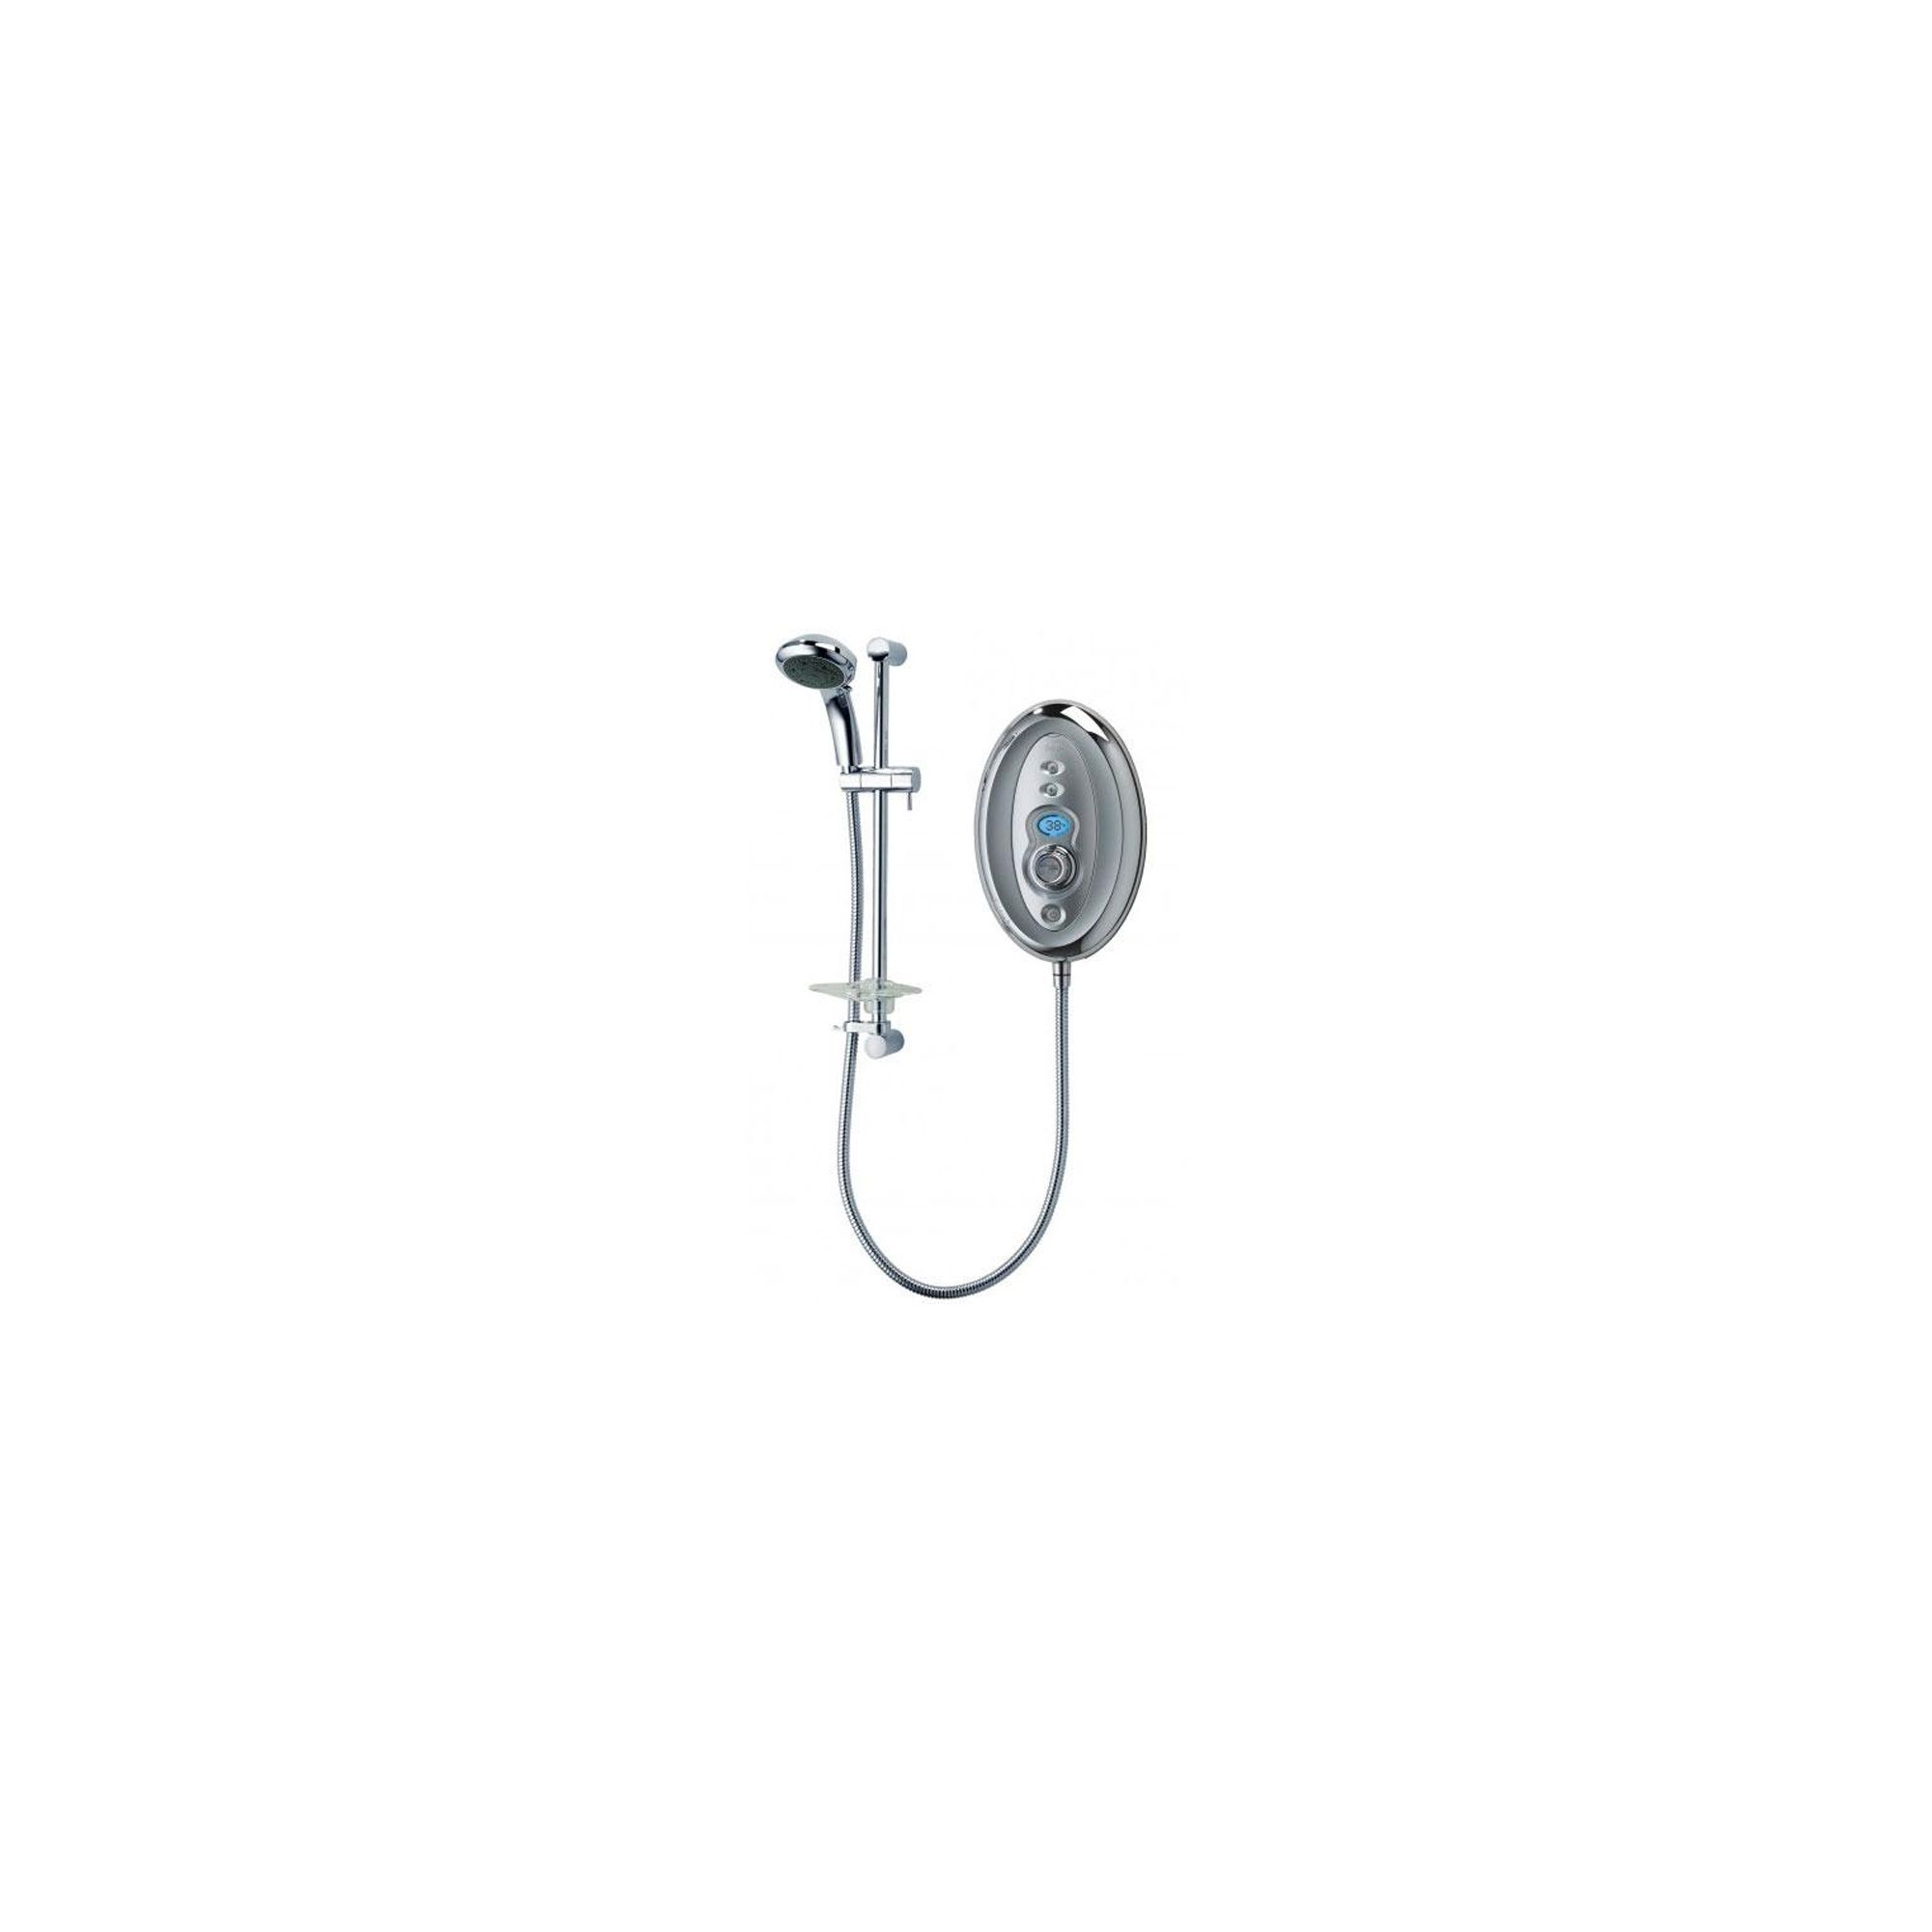 Triton Aspirante Topaz Thermostatic Electric Shower Chrome 10.5 kW at Tesco Direct